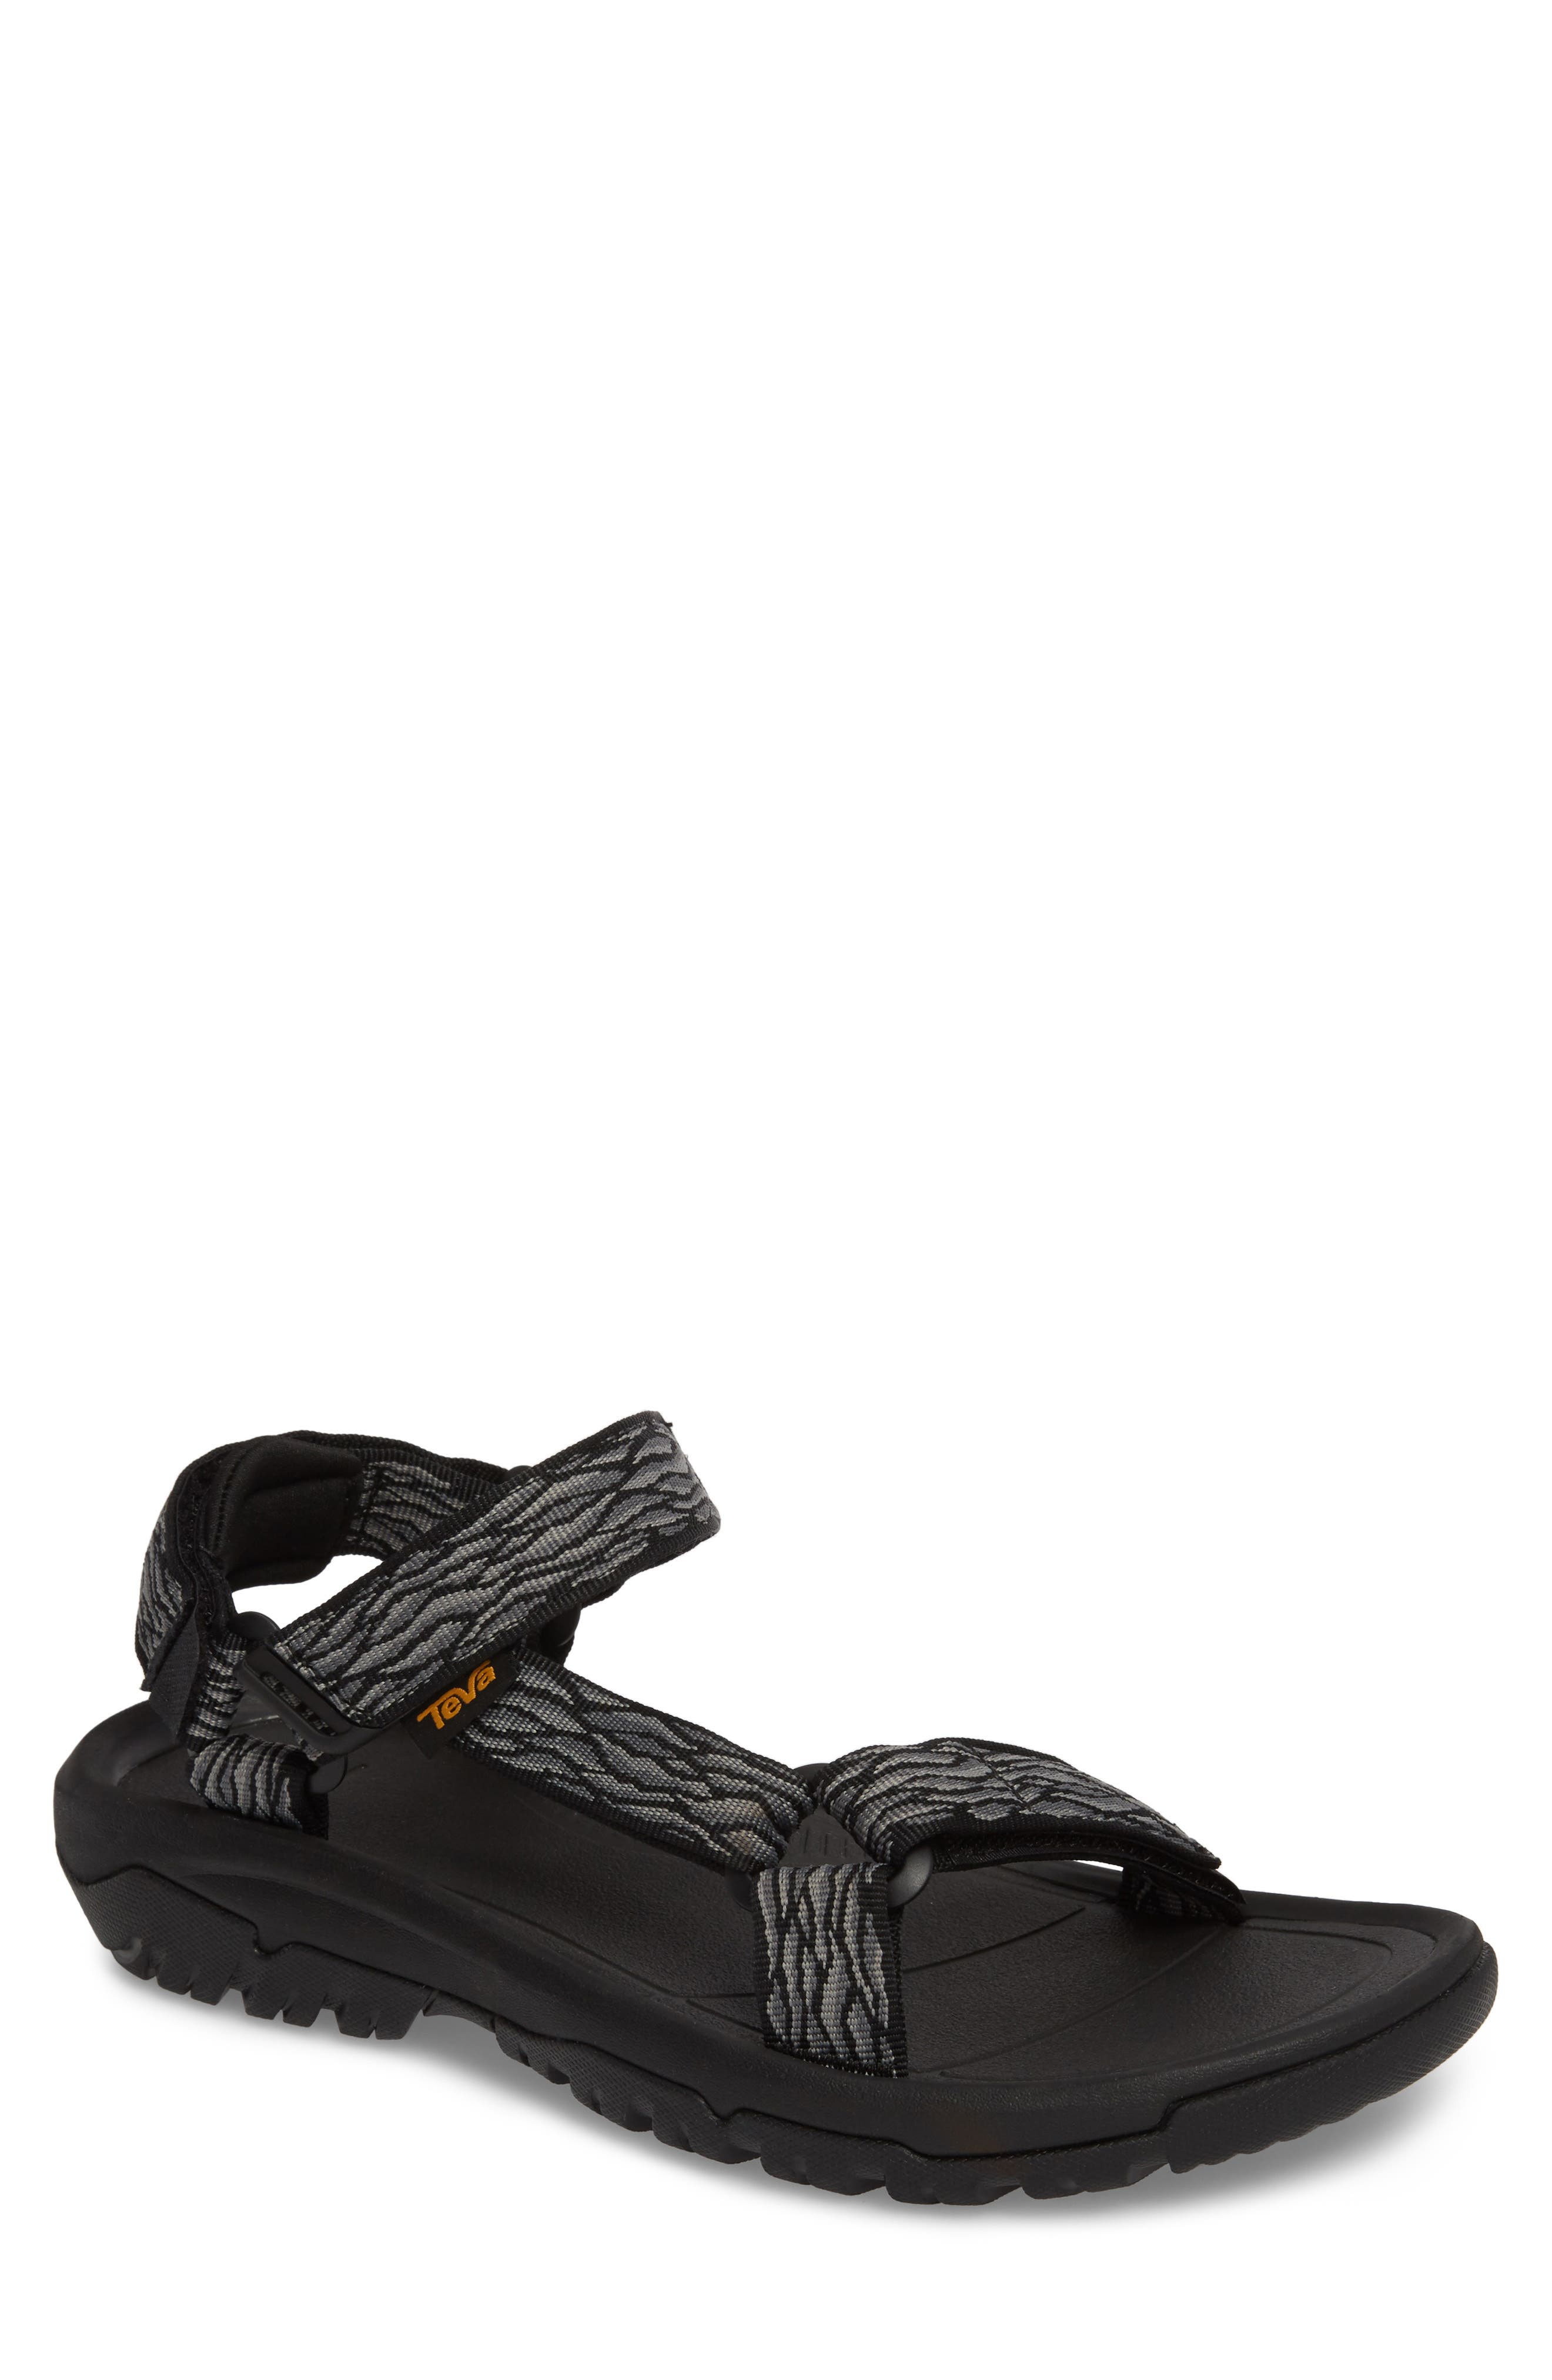 Hurricane XLT 2 Sandal,                             Main thumbnail 1, color,                             Black/ Grey Nylon